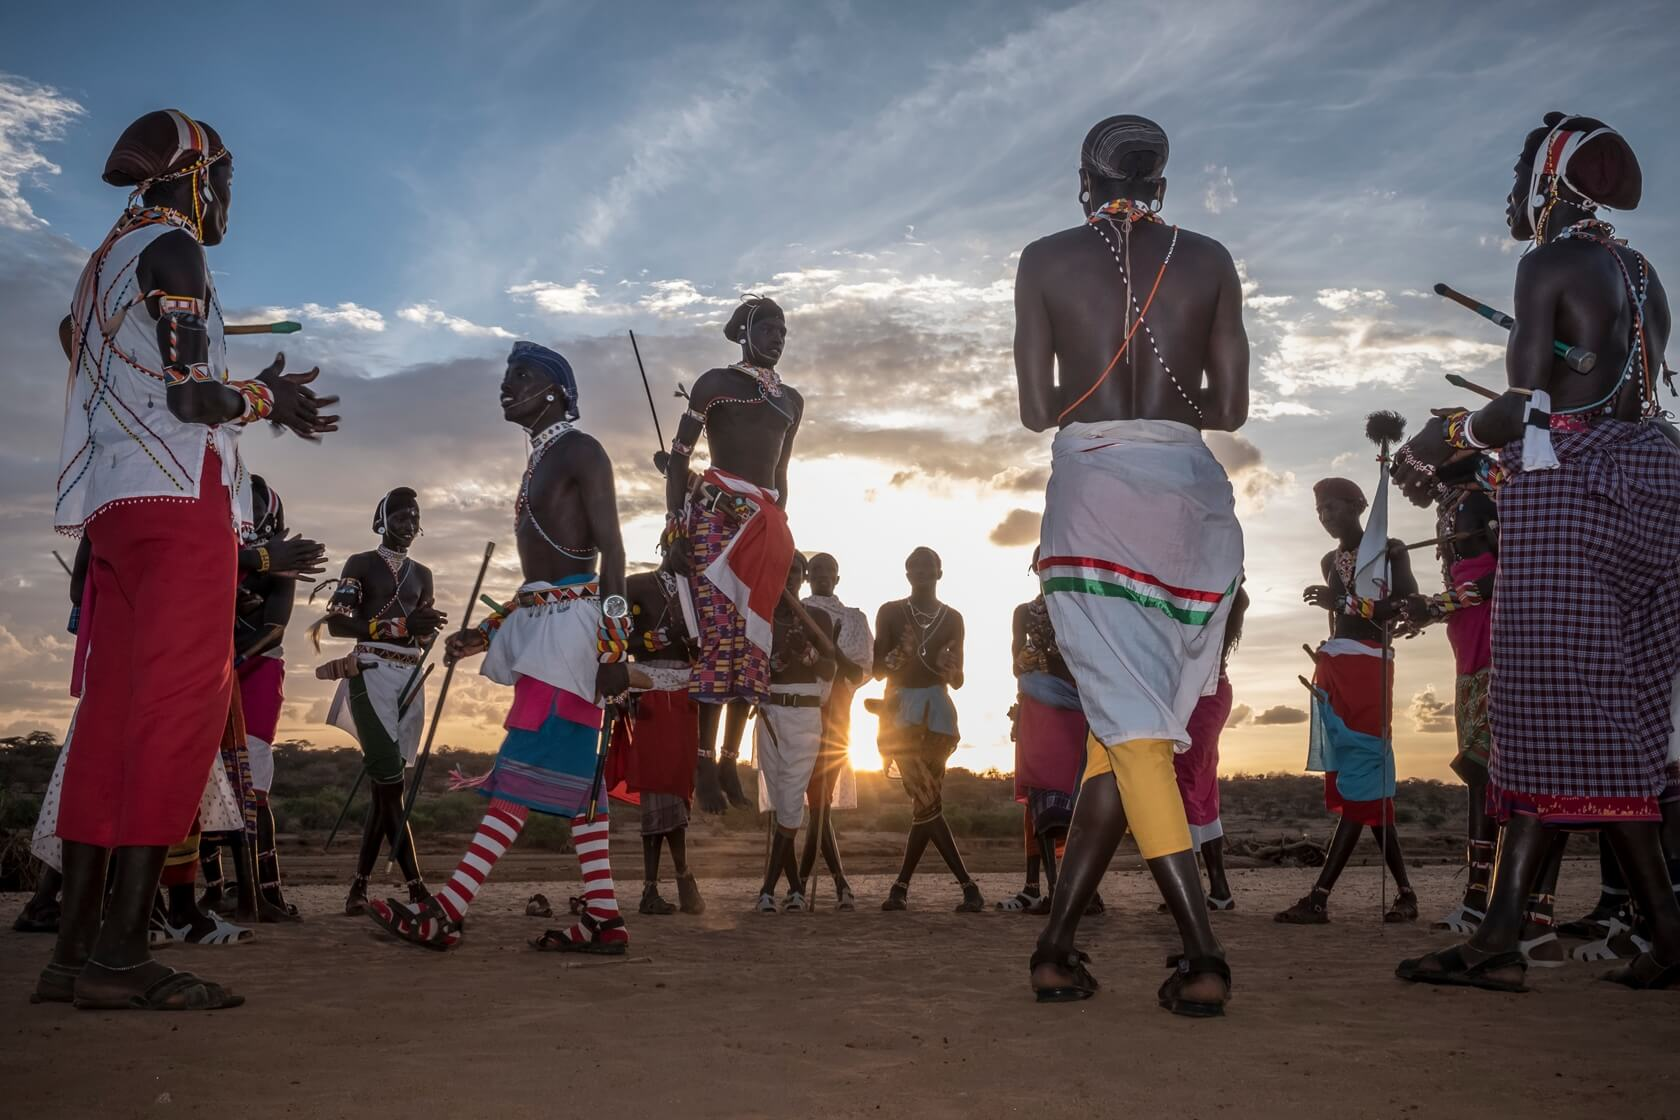 masai experience at sasaab lodge